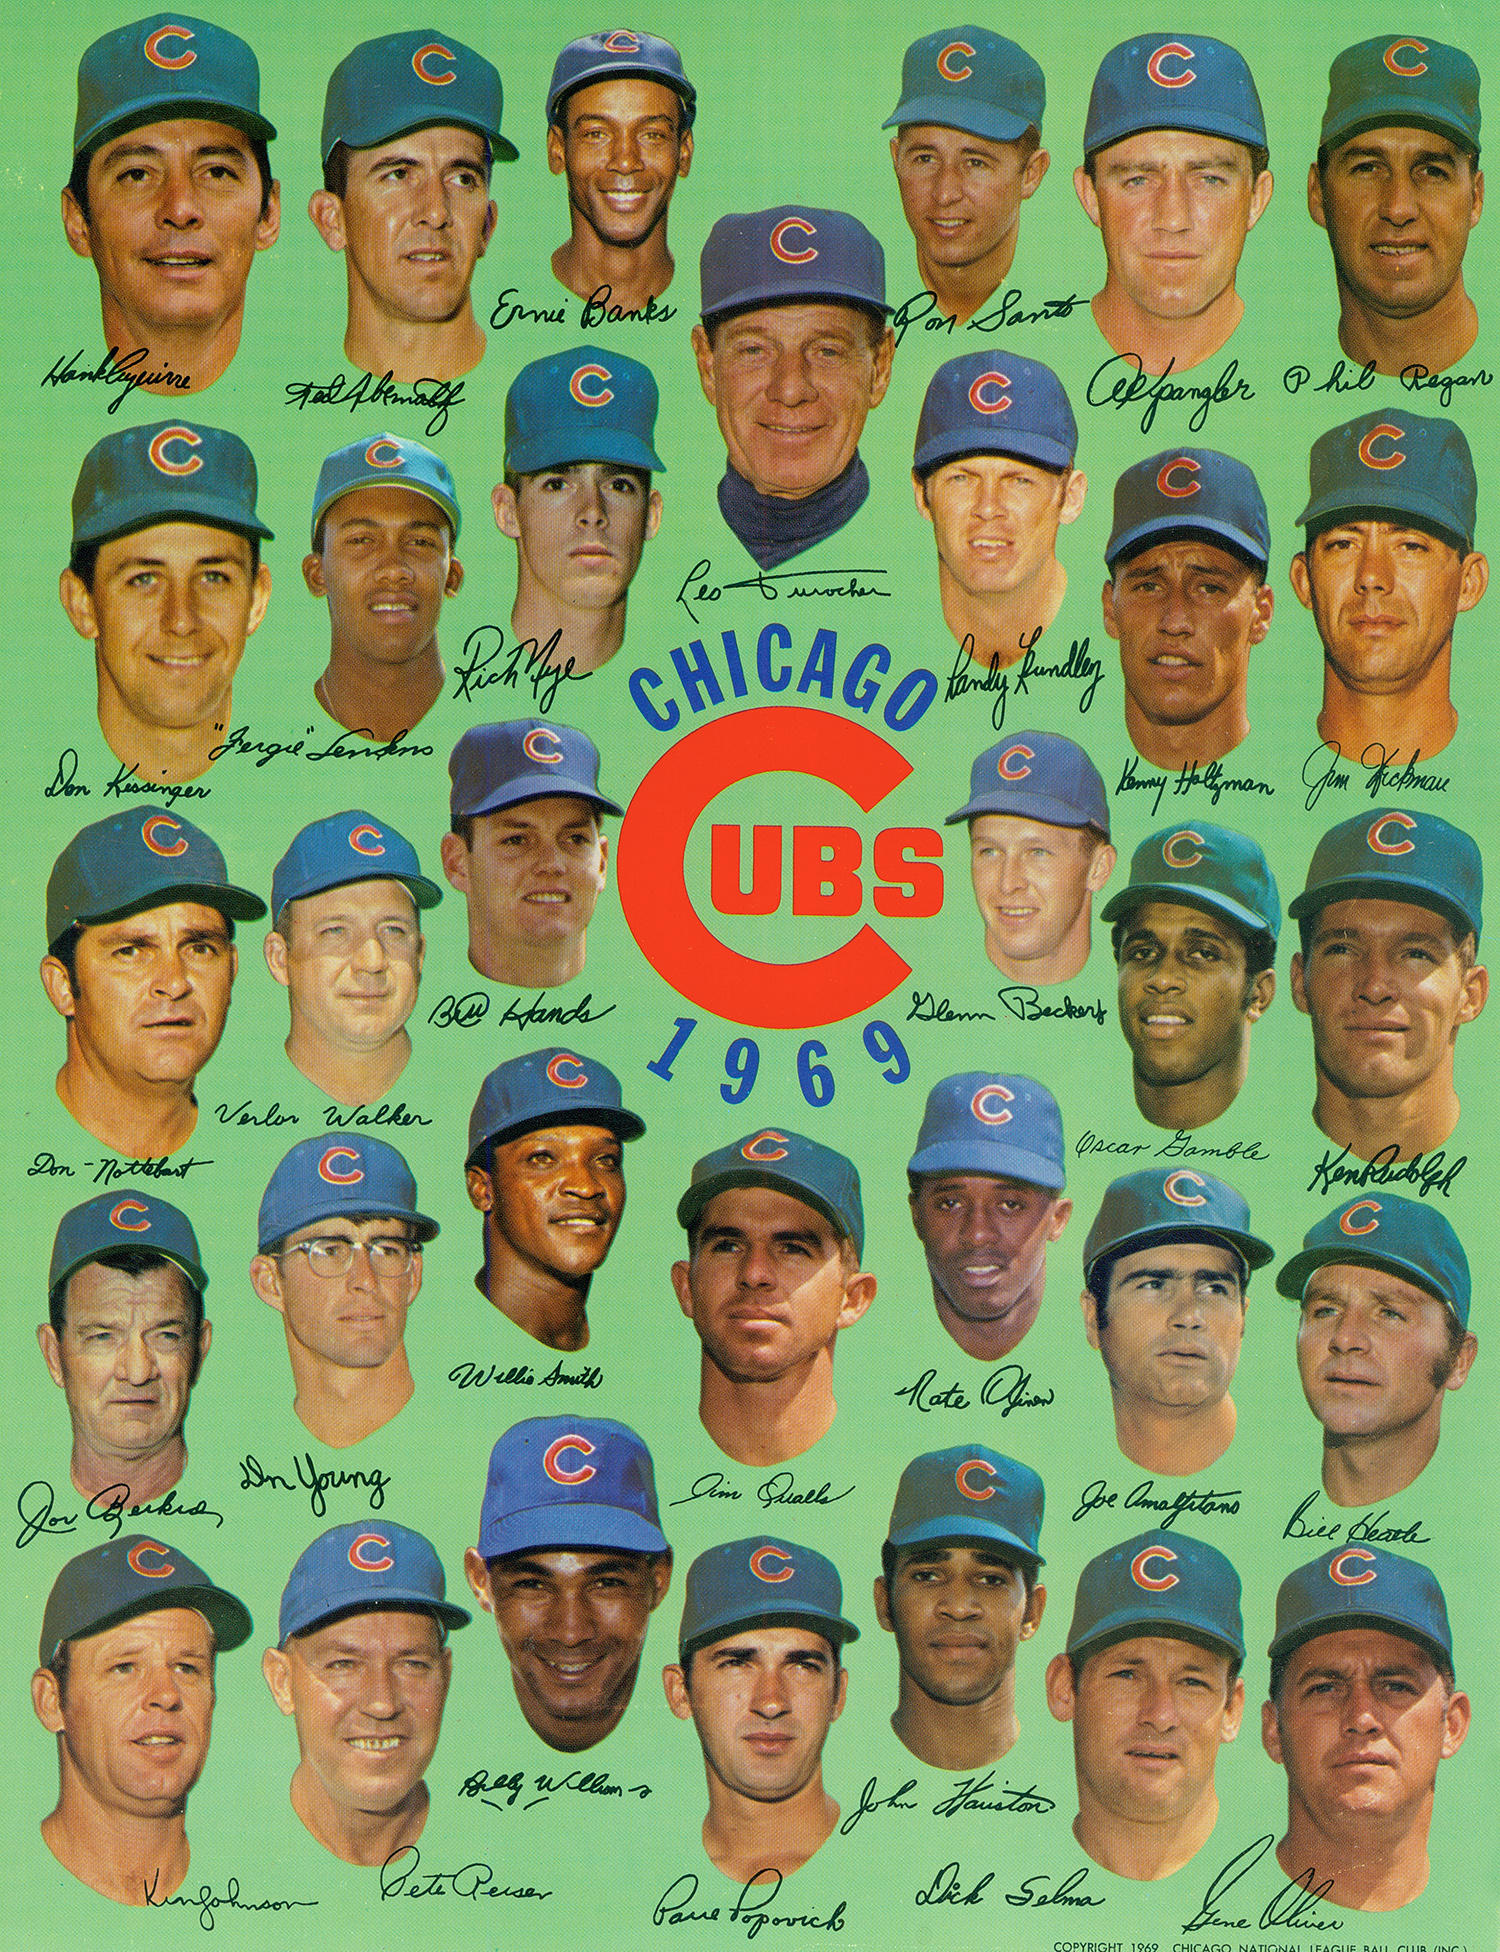 The 1969 Chicago Cubs featured five future Hall of Famers: Ernie Banks, Leo Durocher, Fergie Jenkins, Ron Santo and Billy Williams. (National Baseball Hall of Fame and Museum)